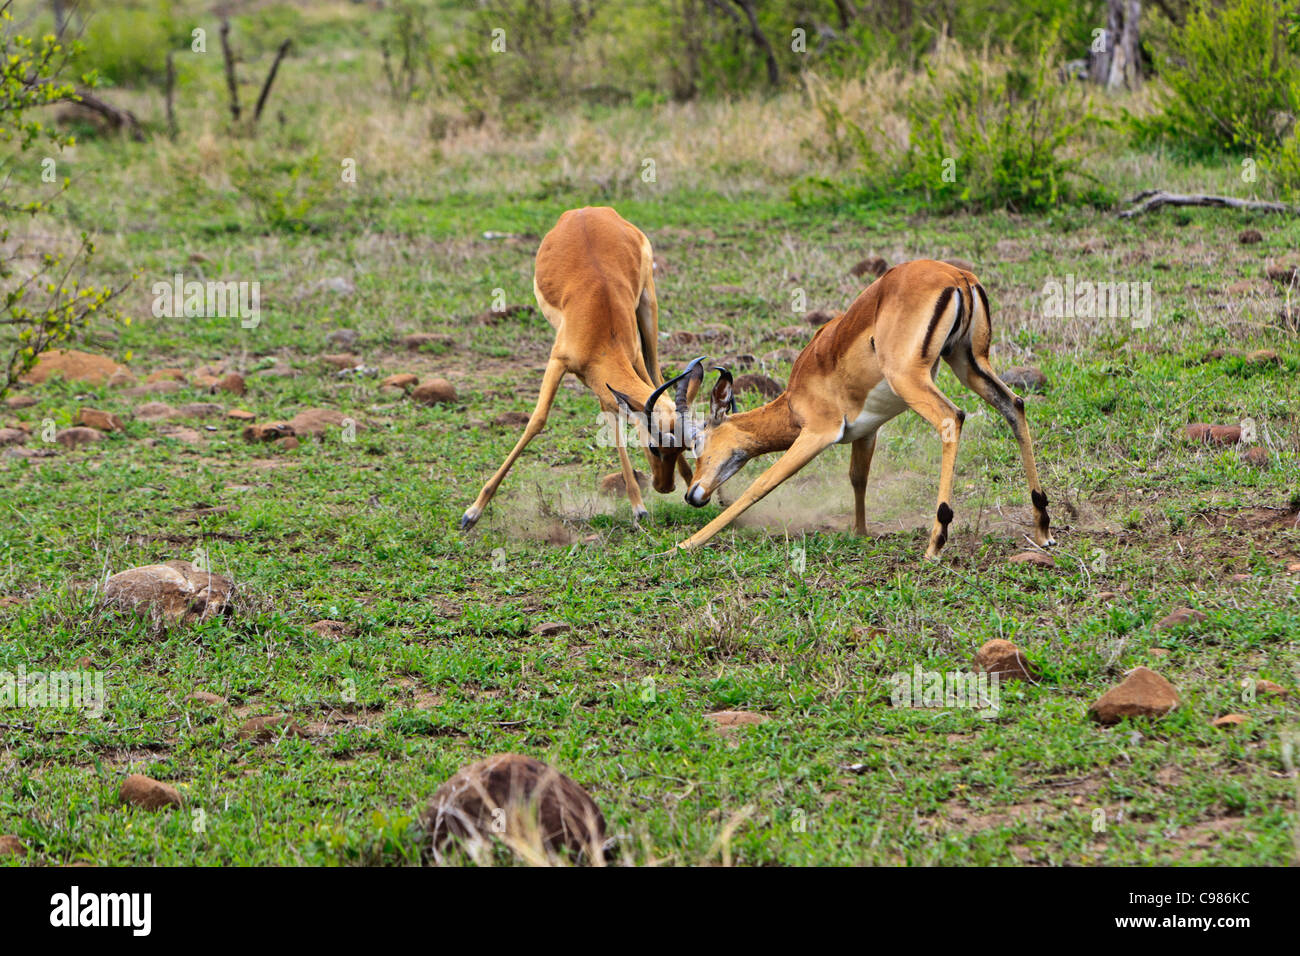 Impala 'Aepyceros melampus' rams fighting during the mating season. Kruger National Park South Africa. - Stock Image